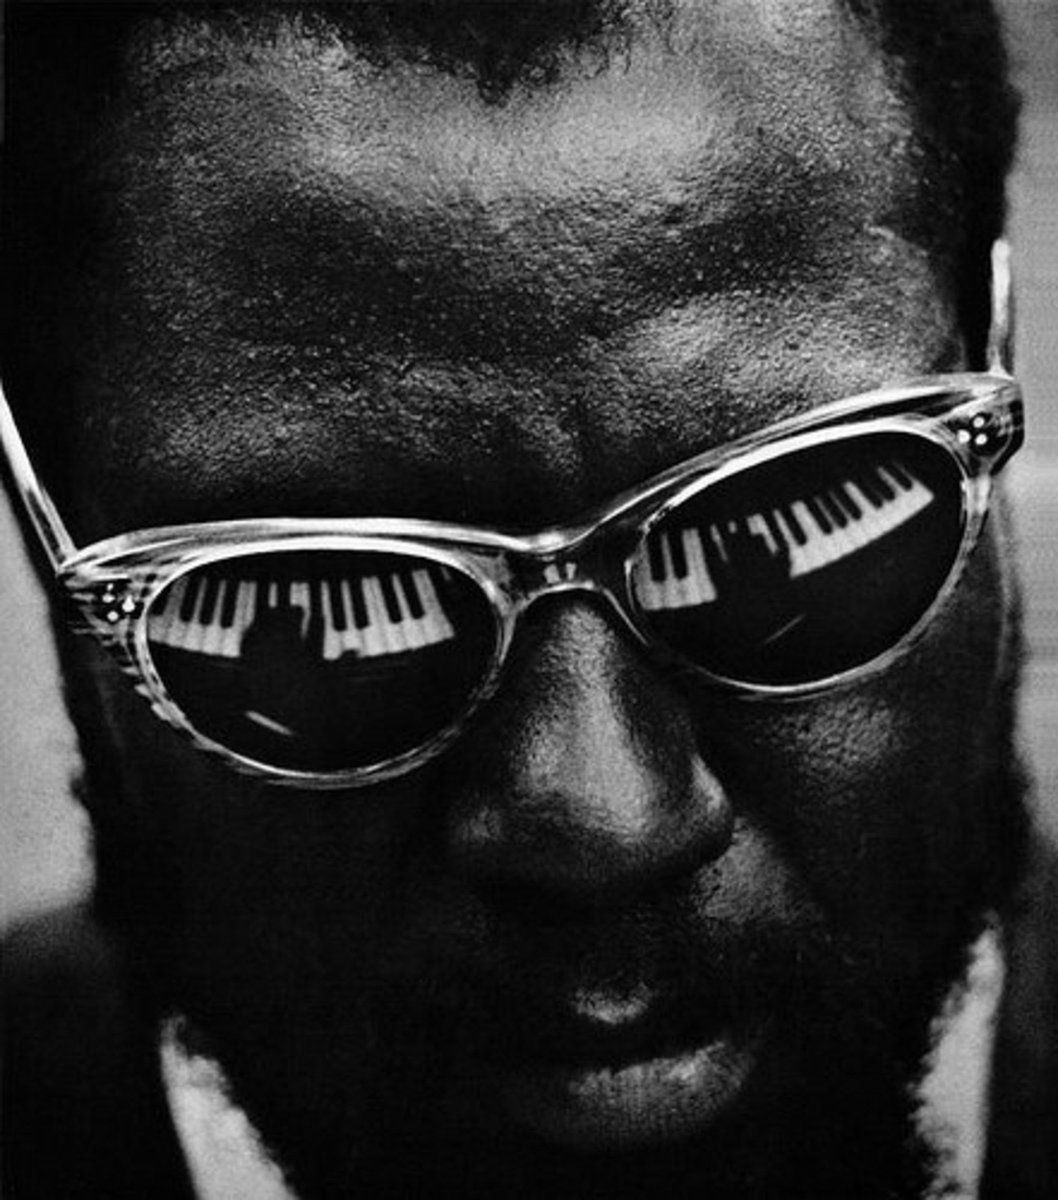 Thelonious Monk - by Lawrence Shustak 1962